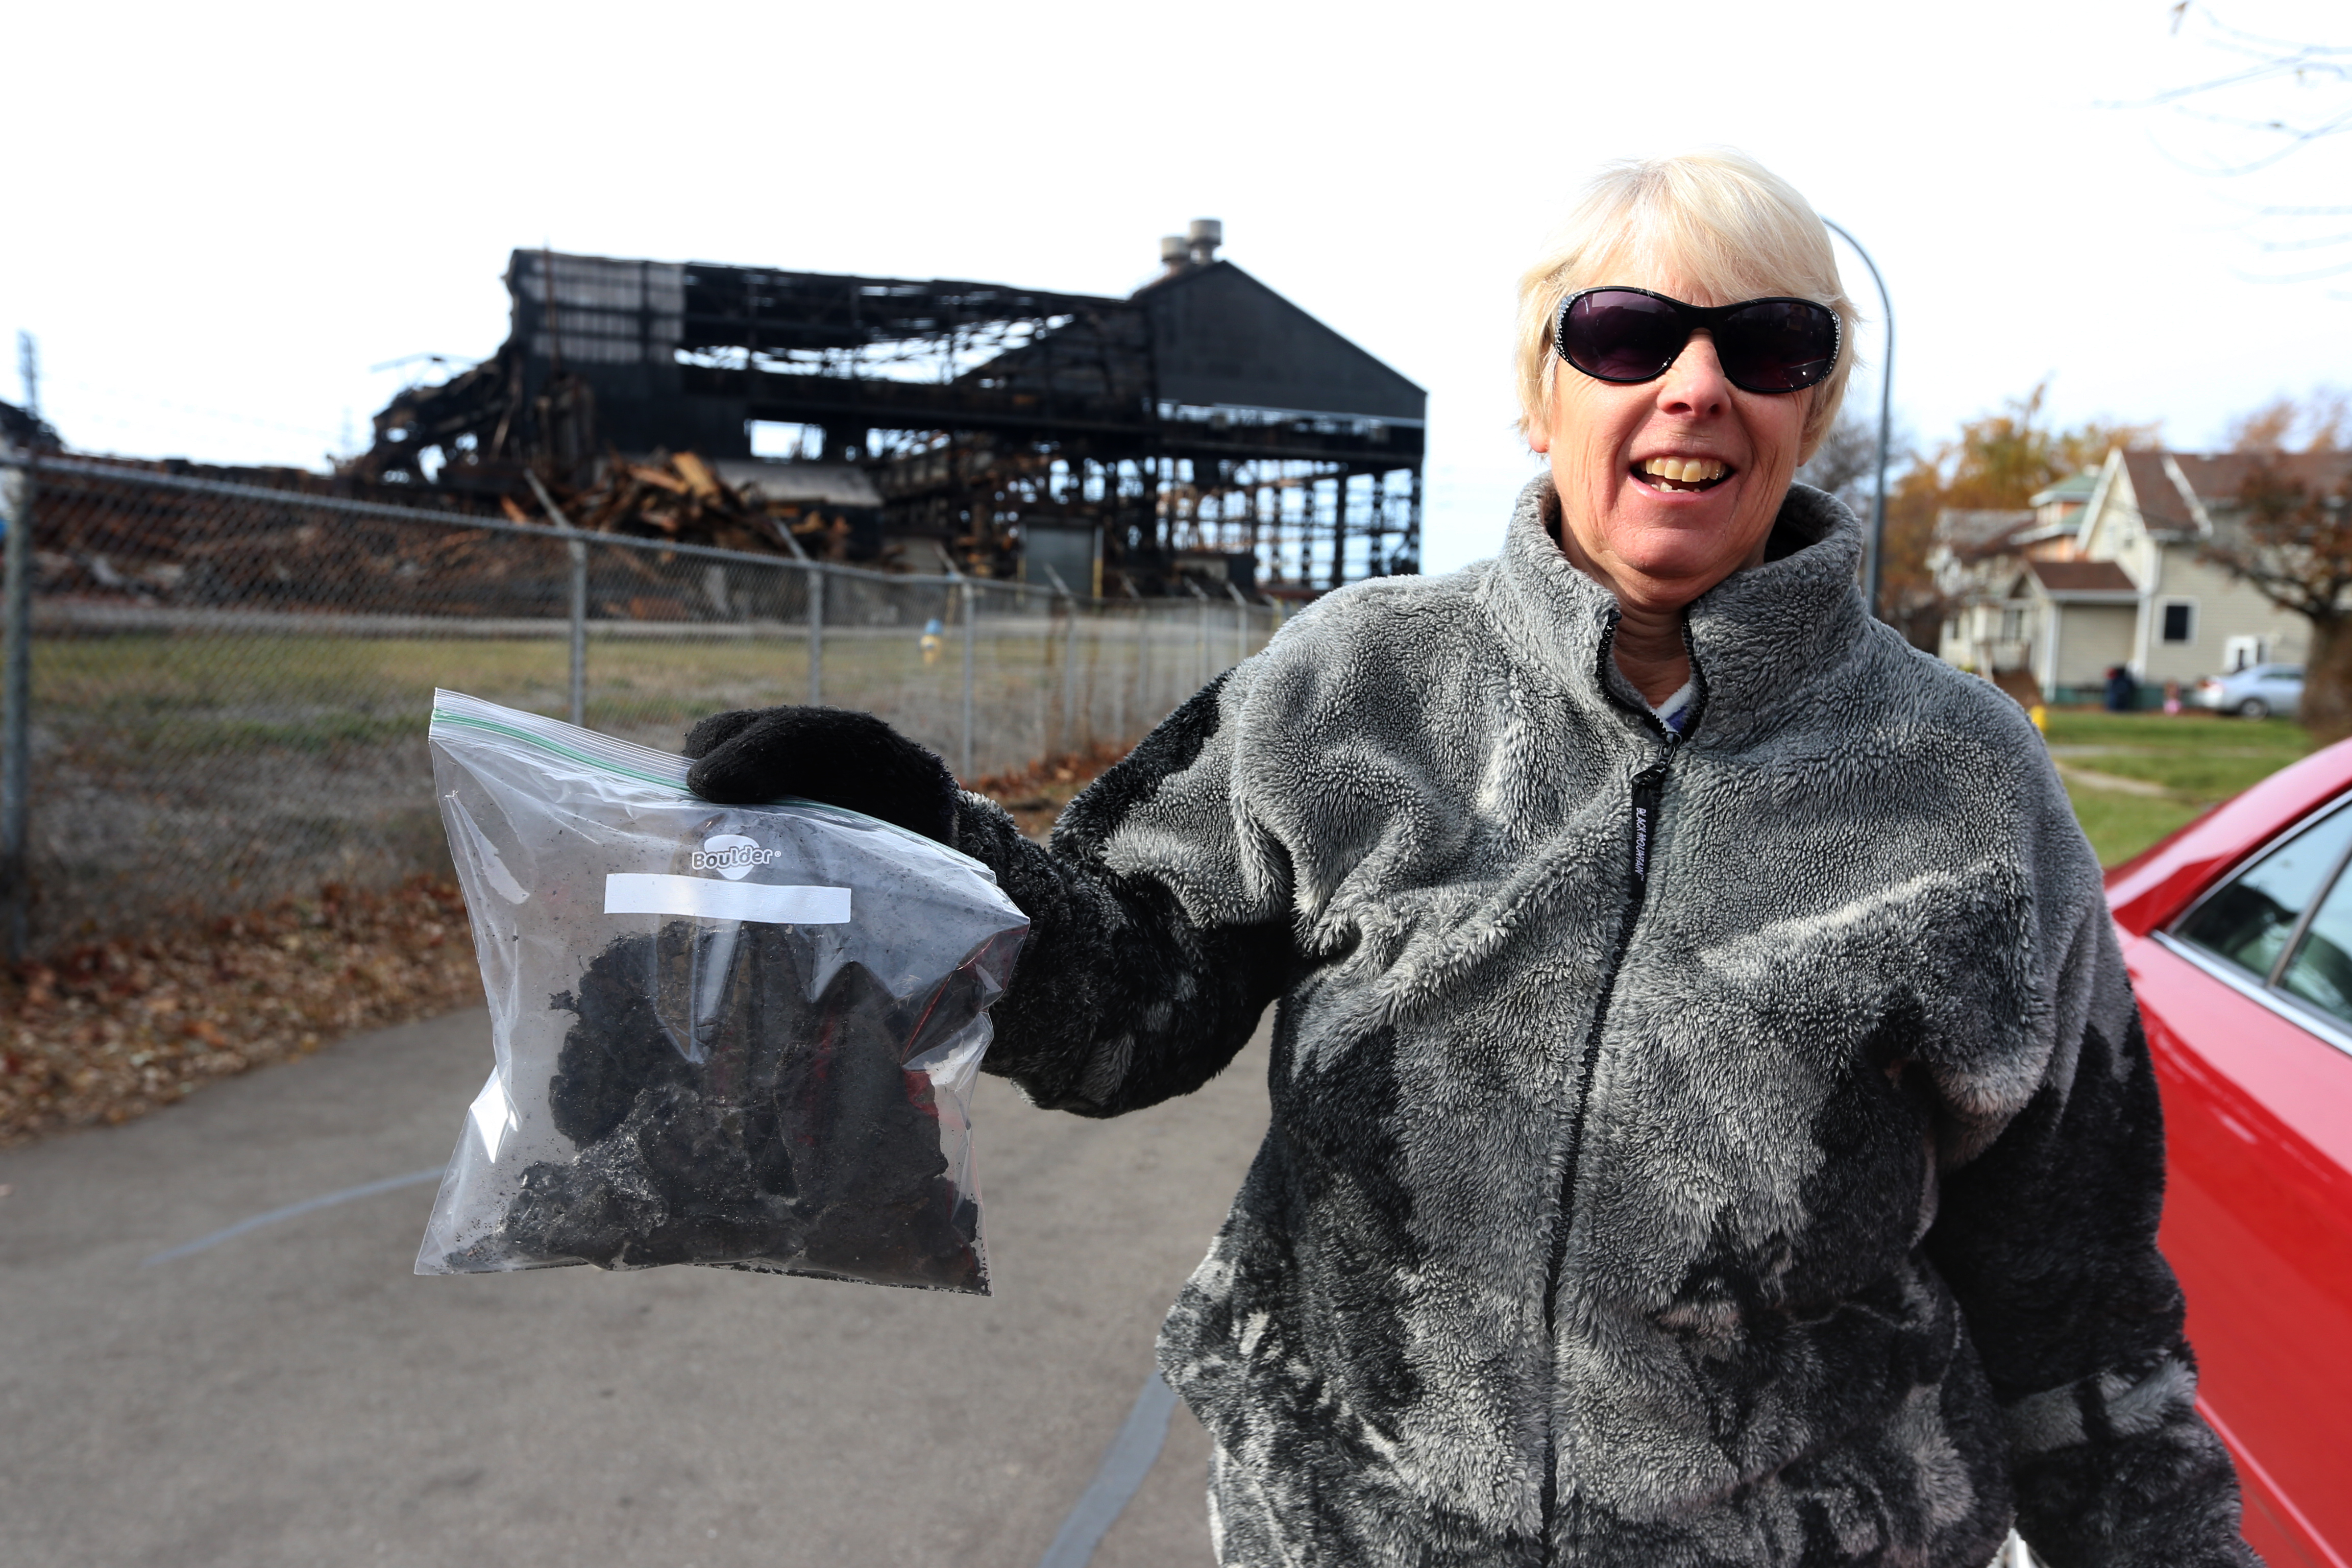 Eileen Wahl of Hamburg, N.Y. who lives about 4 miles from the former Bethlehem Steel Plant , in Lackawanna, N.Y., on Wednesday, Nov. 23, 2016 shows off charred debris she bagged that landed in her yard. (John Hickey/Buffalo News)